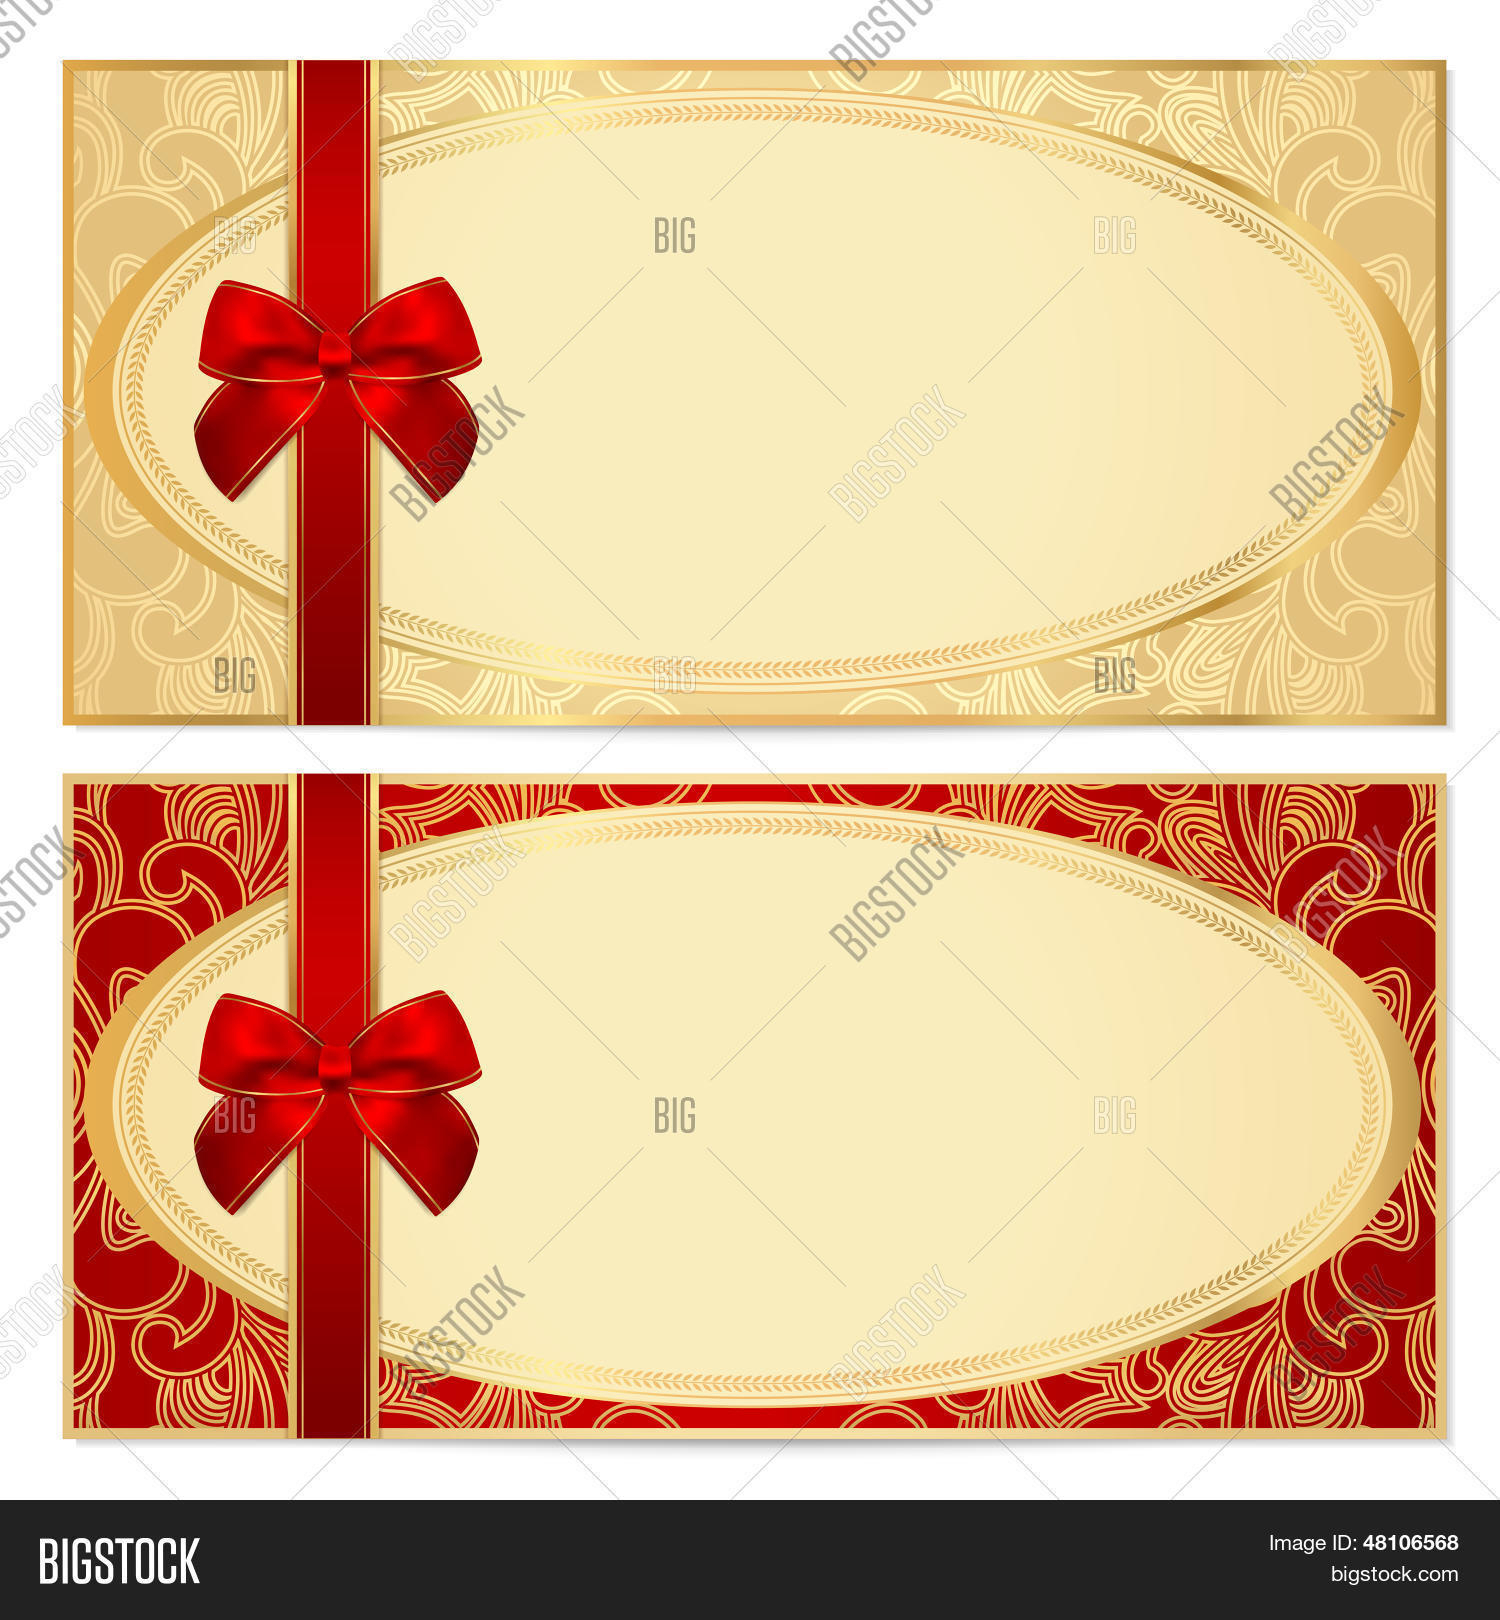 Discount Voucher Free Psd Template   Psdfreebies Templates - Free Printable Photography Gift Certificate Template